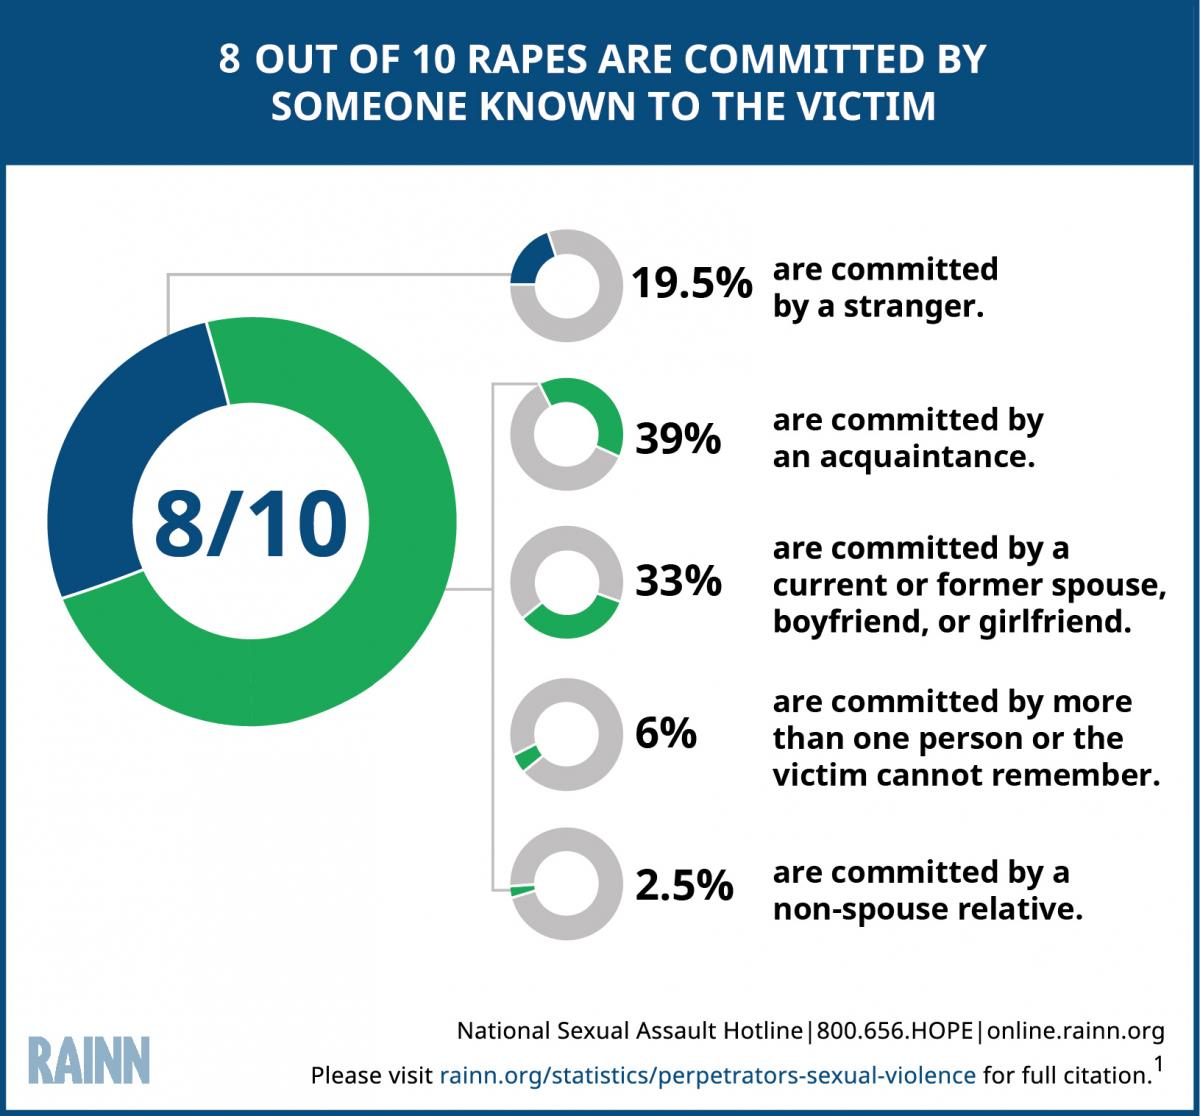 Circle graph explains that 3 out of 4 rapes are committed by someone known to the victim. The number is broken down further by type of acquaintance. 43% are committed by a friend or acquaintance, 27% by a current or former spouse, boyfriend, or girlfriend, 7% are by someone the victim cannot remember or by more than one offender, 2% are non-spouse relatives, and 21% are committed by a stranger.